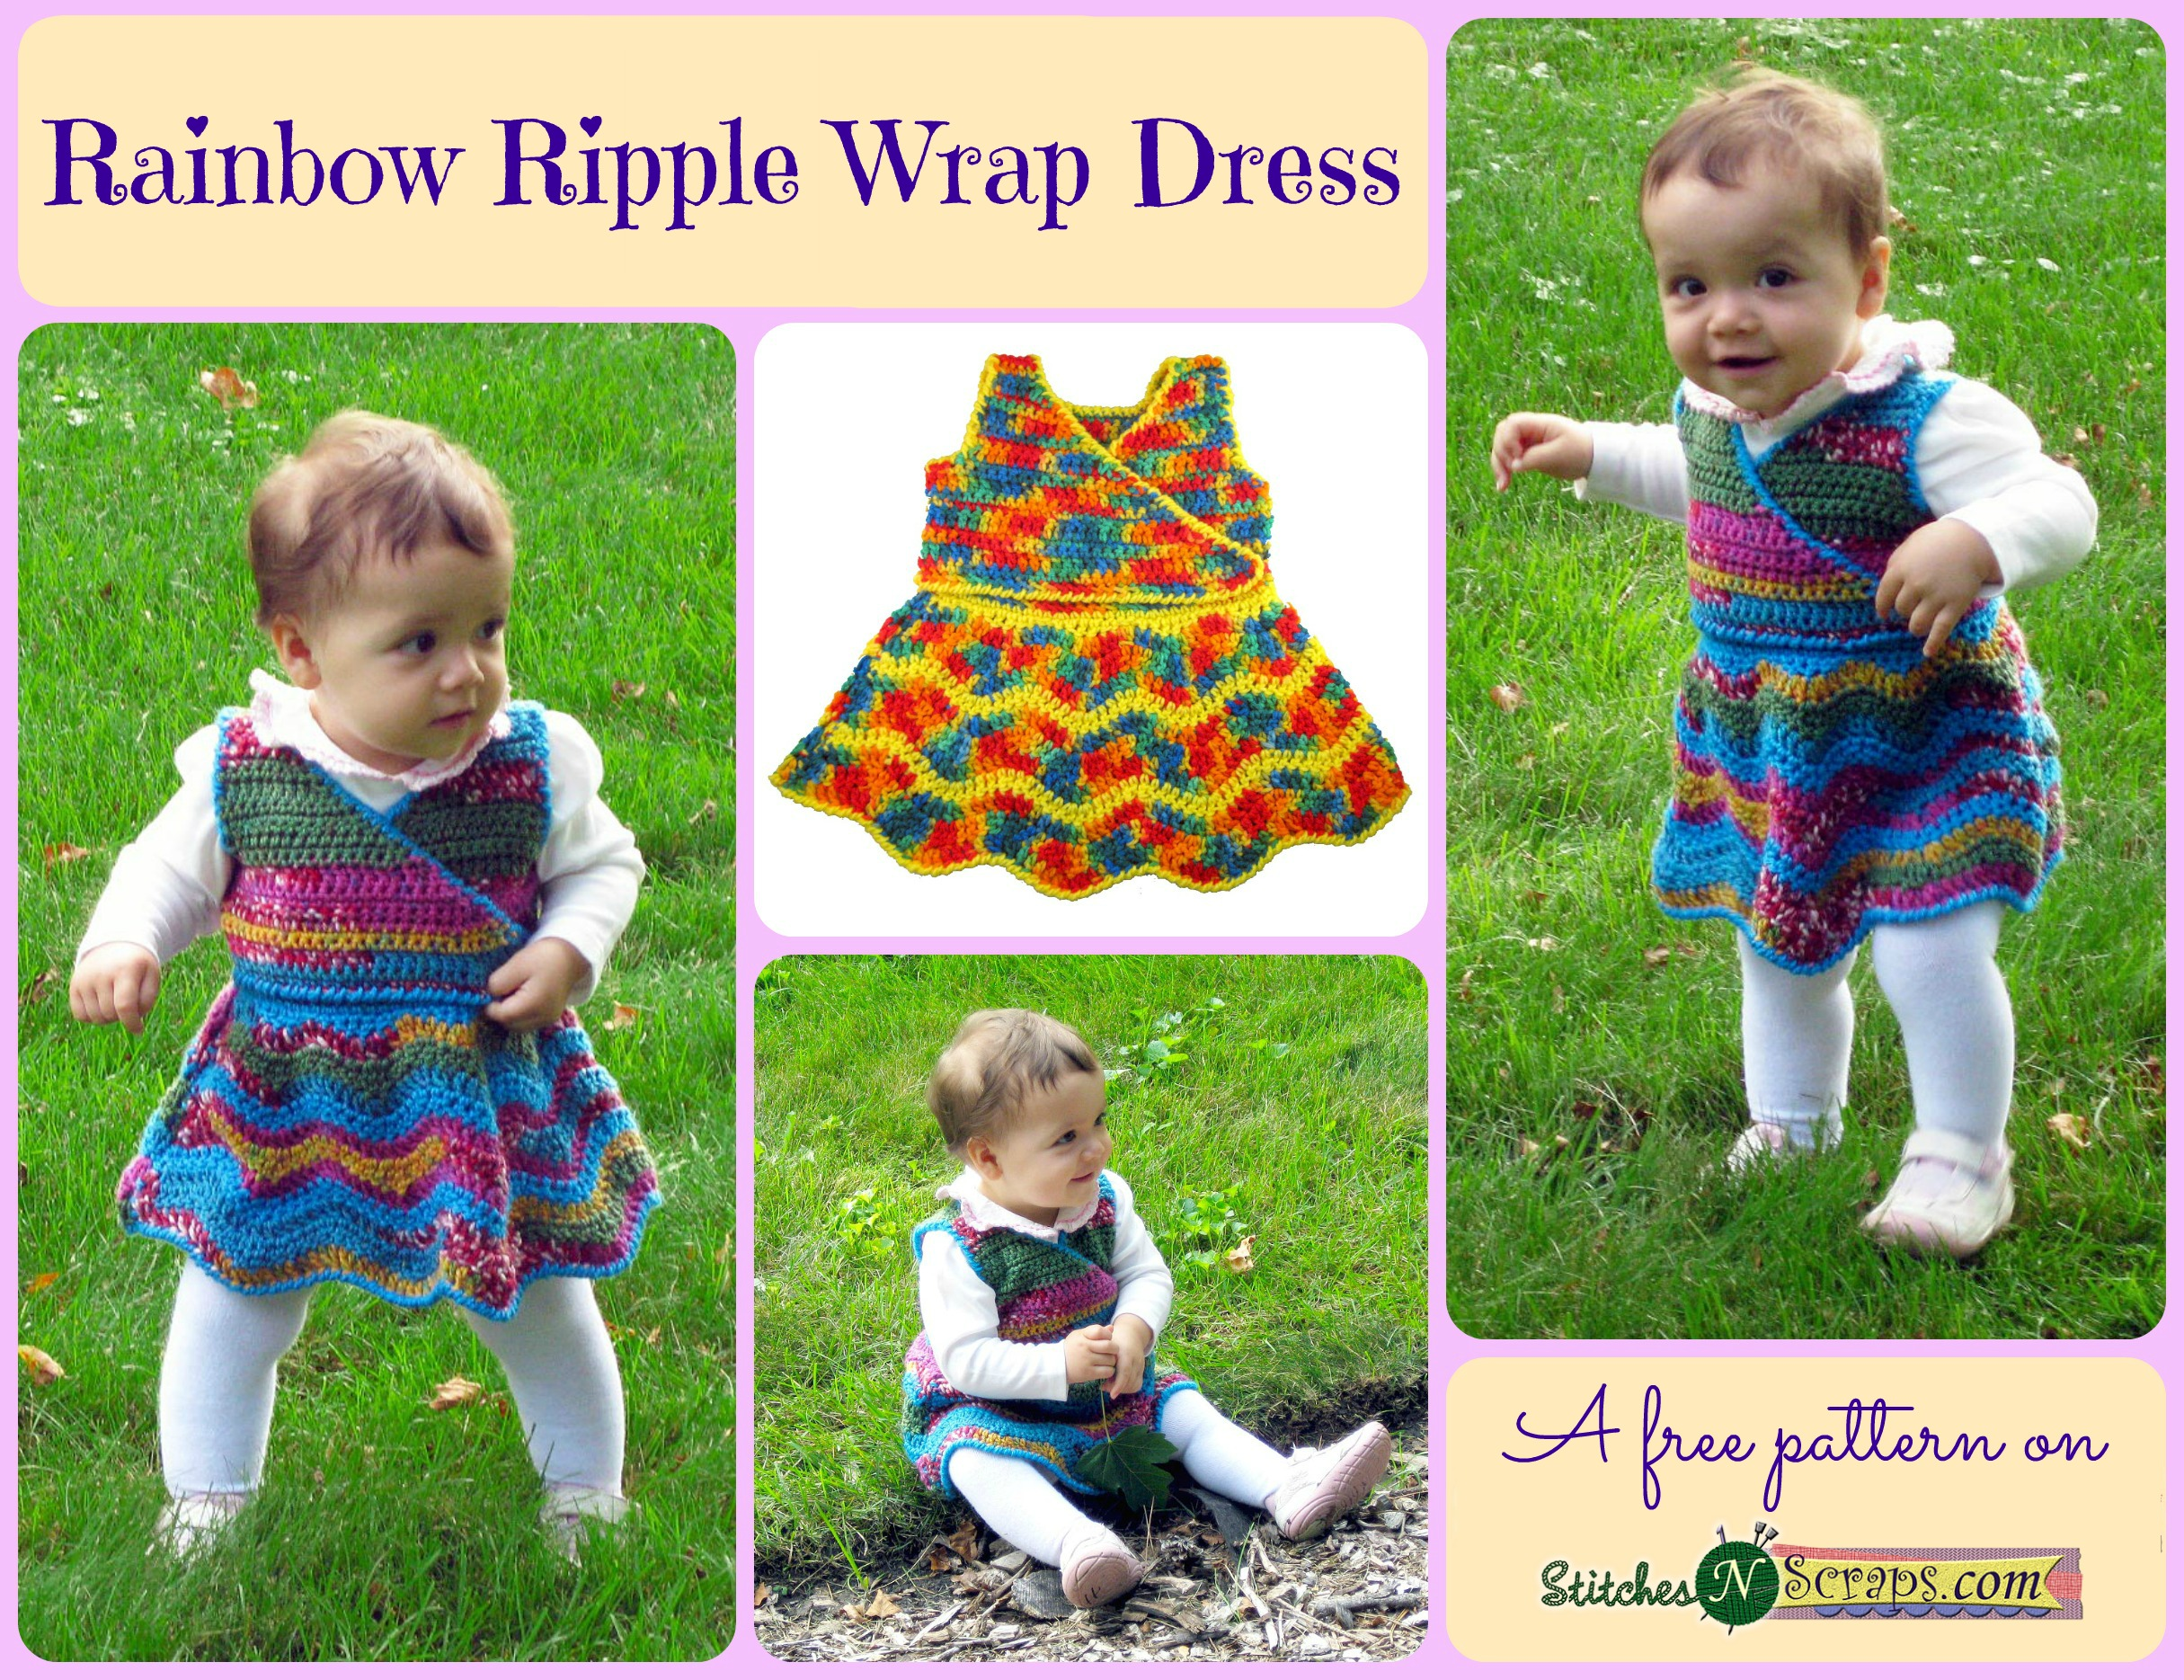 Free Pattern - Rainbow Ripple Wrap Dress - Stitches n Scraps